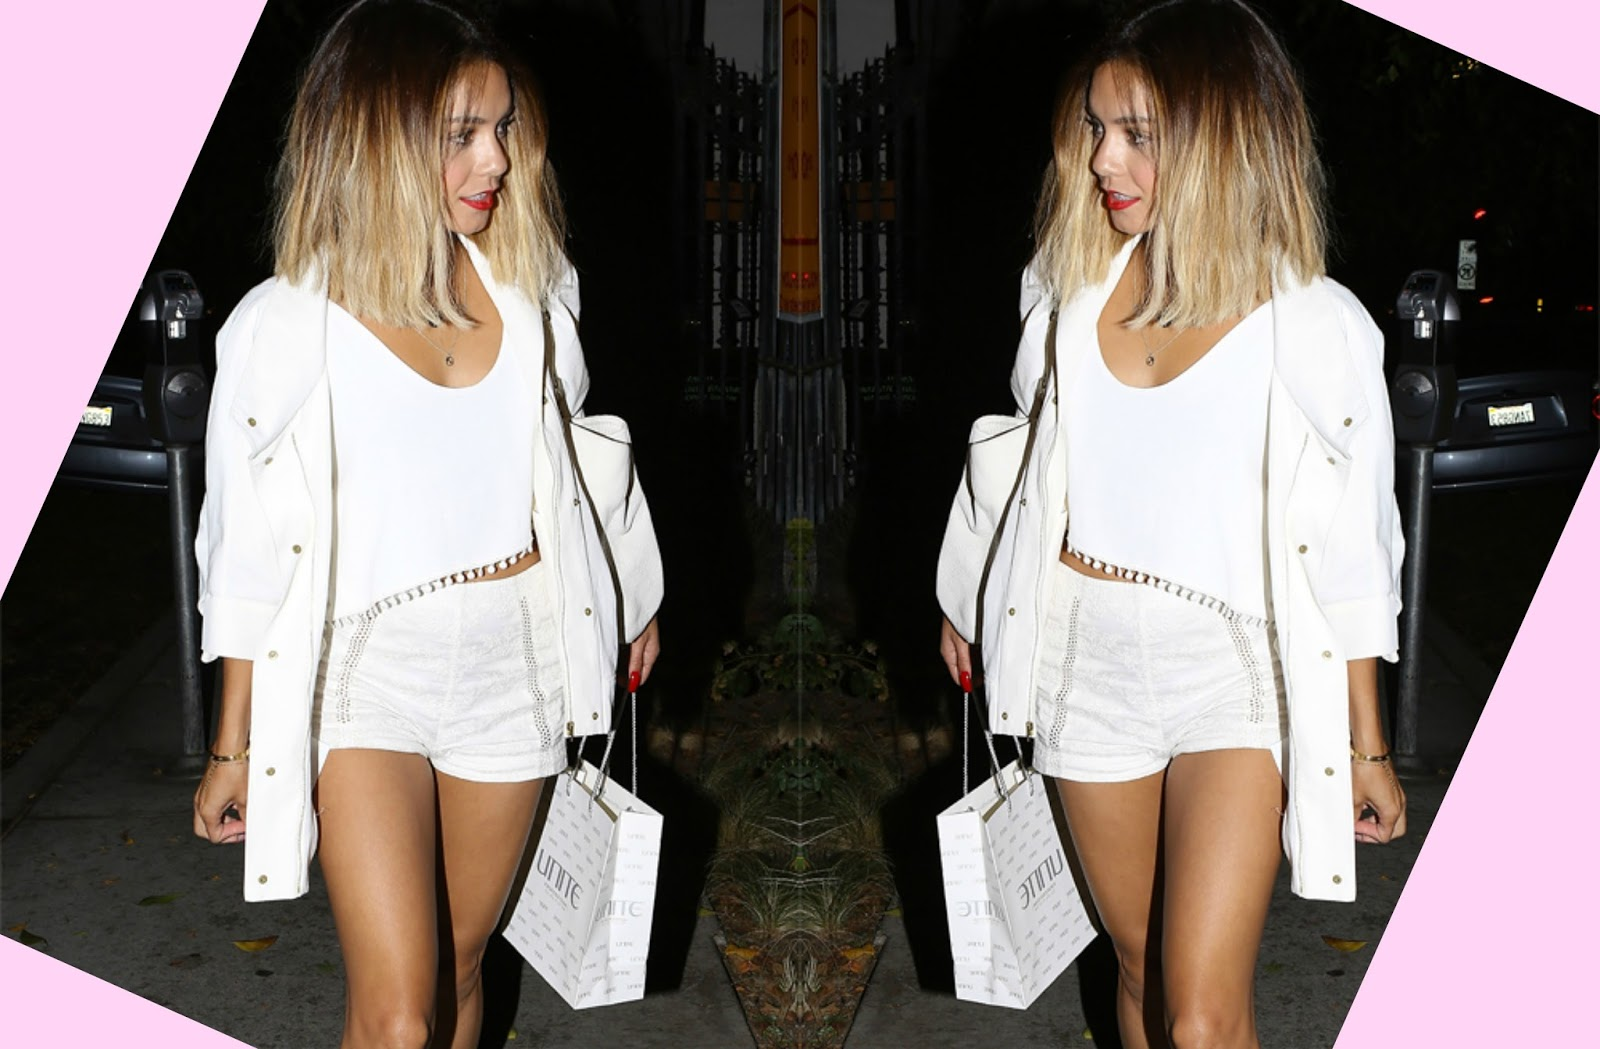 FOREVER21 EXTRA 30% SALE CLOTHING ACCESSORIES vanessa hudgens cotton shorts